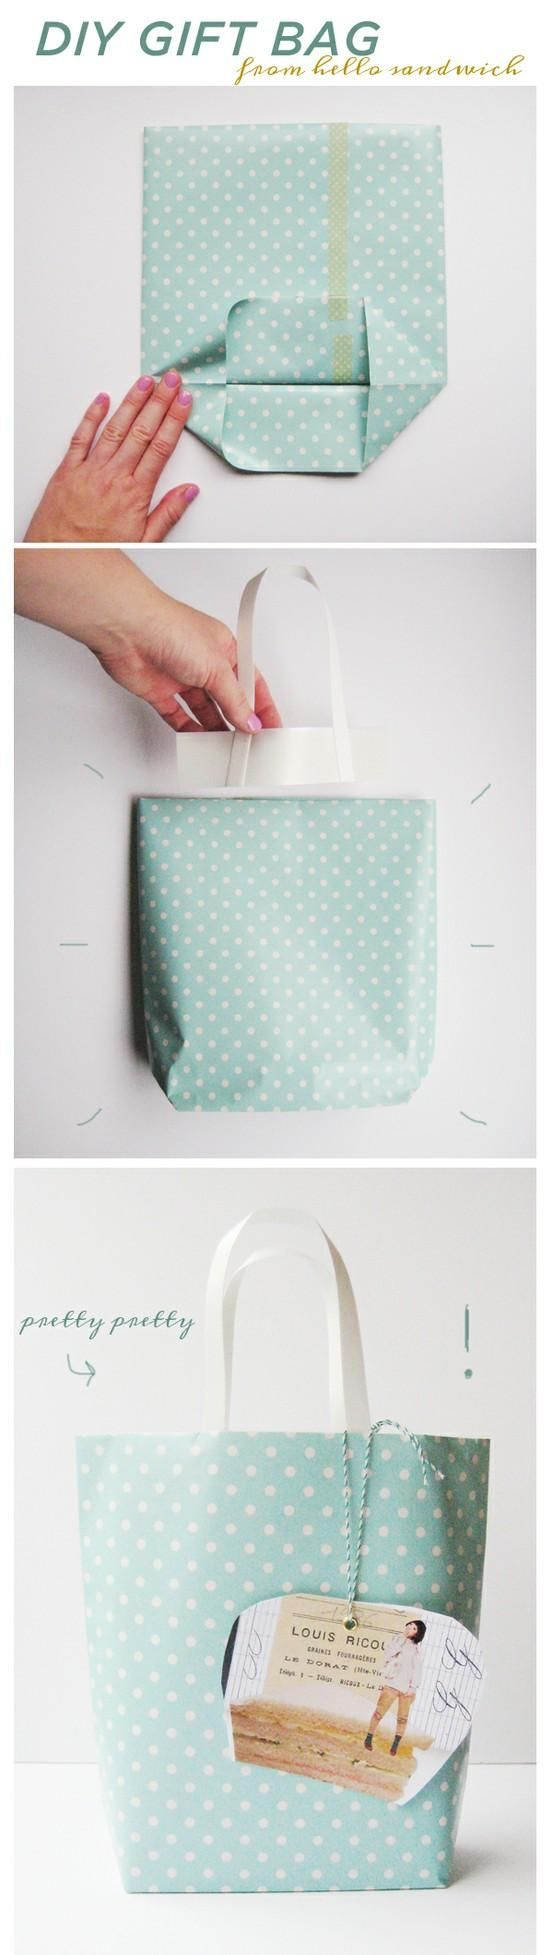 74 best Encourage/Gifts images on Pinterest   Gift ideas ...